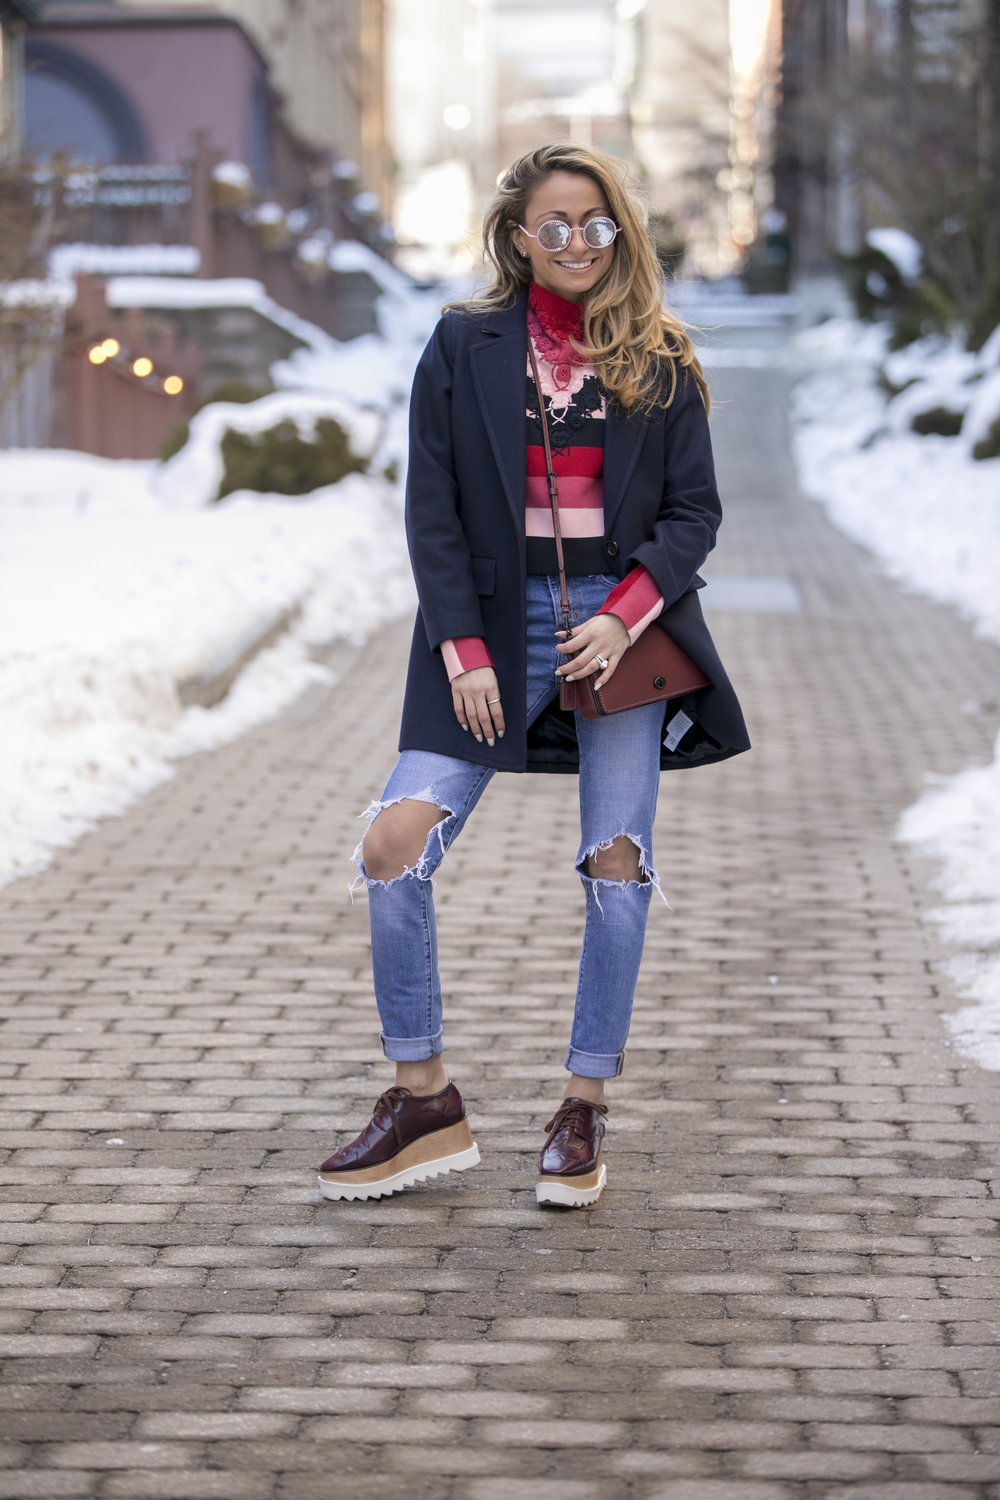 Bag: Coach |Top: & Other Stories |Denim: Levi's |Shoes: Stella McCartney |Coat:J.Crew ( similar )    Dino Petrocelli Photography